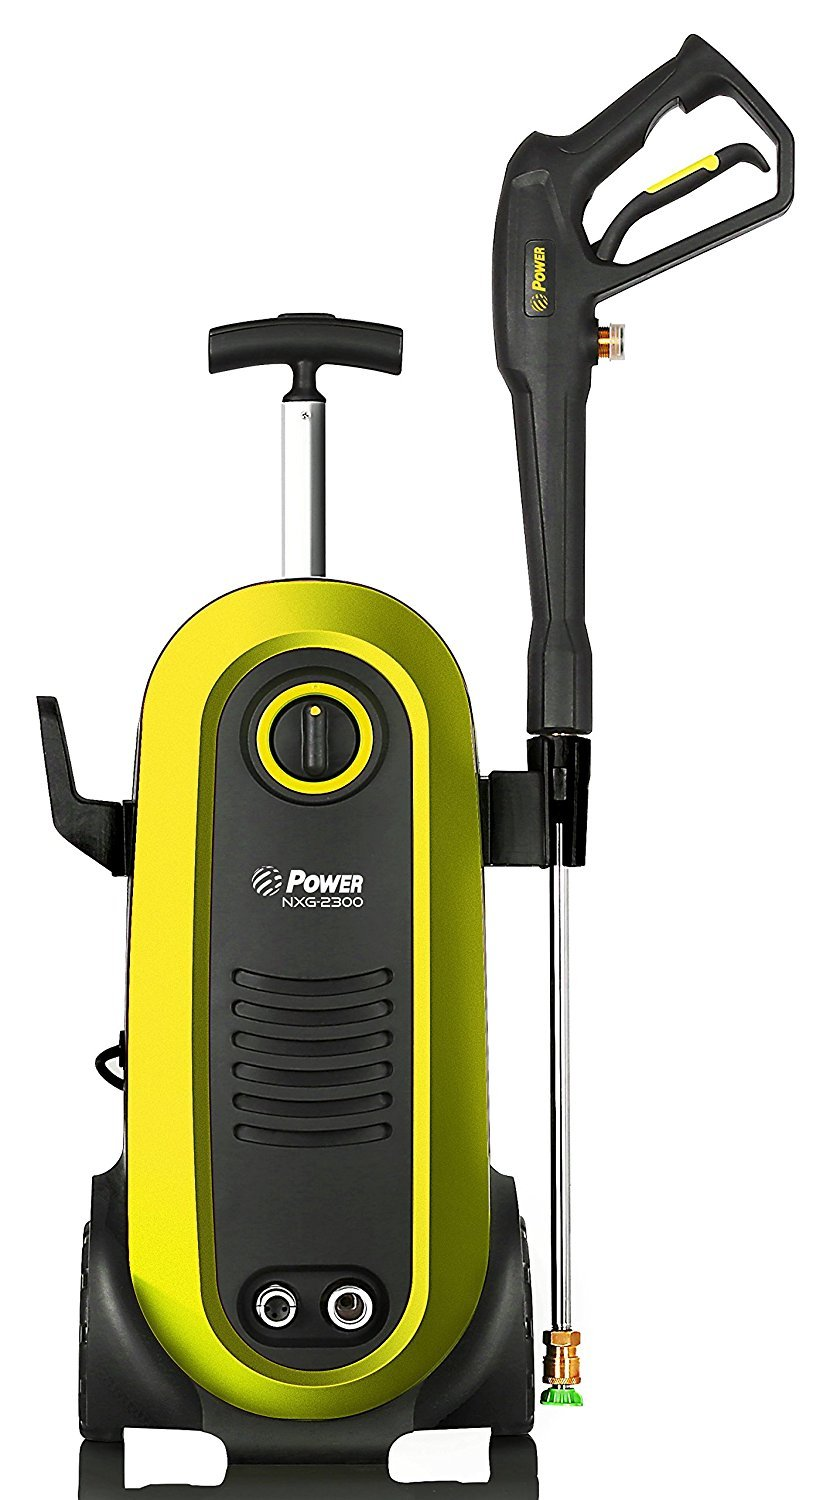 Power Pressure Washer 2300 PSI Electric | Brushless Induction Technology | The Next Generation of Pressure Washer | 3X More Lifespan | Ultra Low Sound | New Design | Power Efficient (Yellow) by Power Products USA (Image #3)